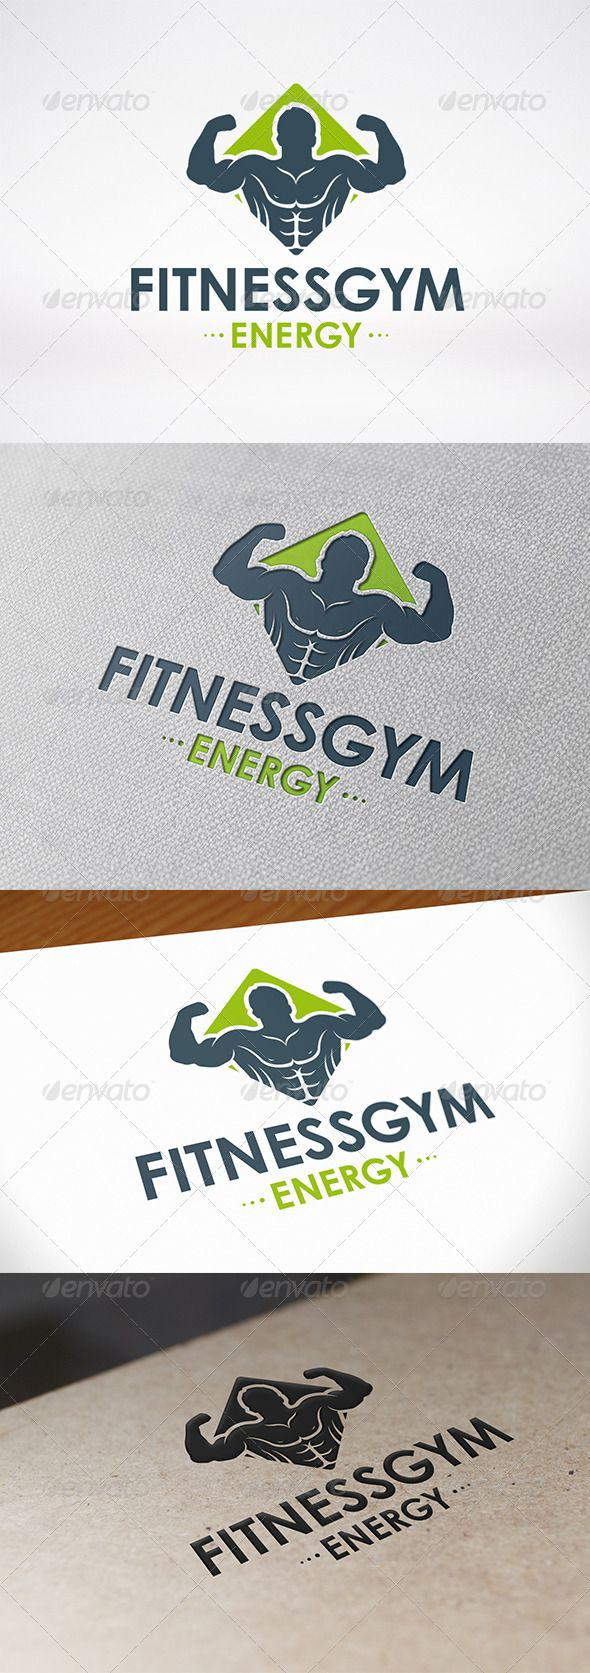 Fitness Gym Logo Template .This image is available on